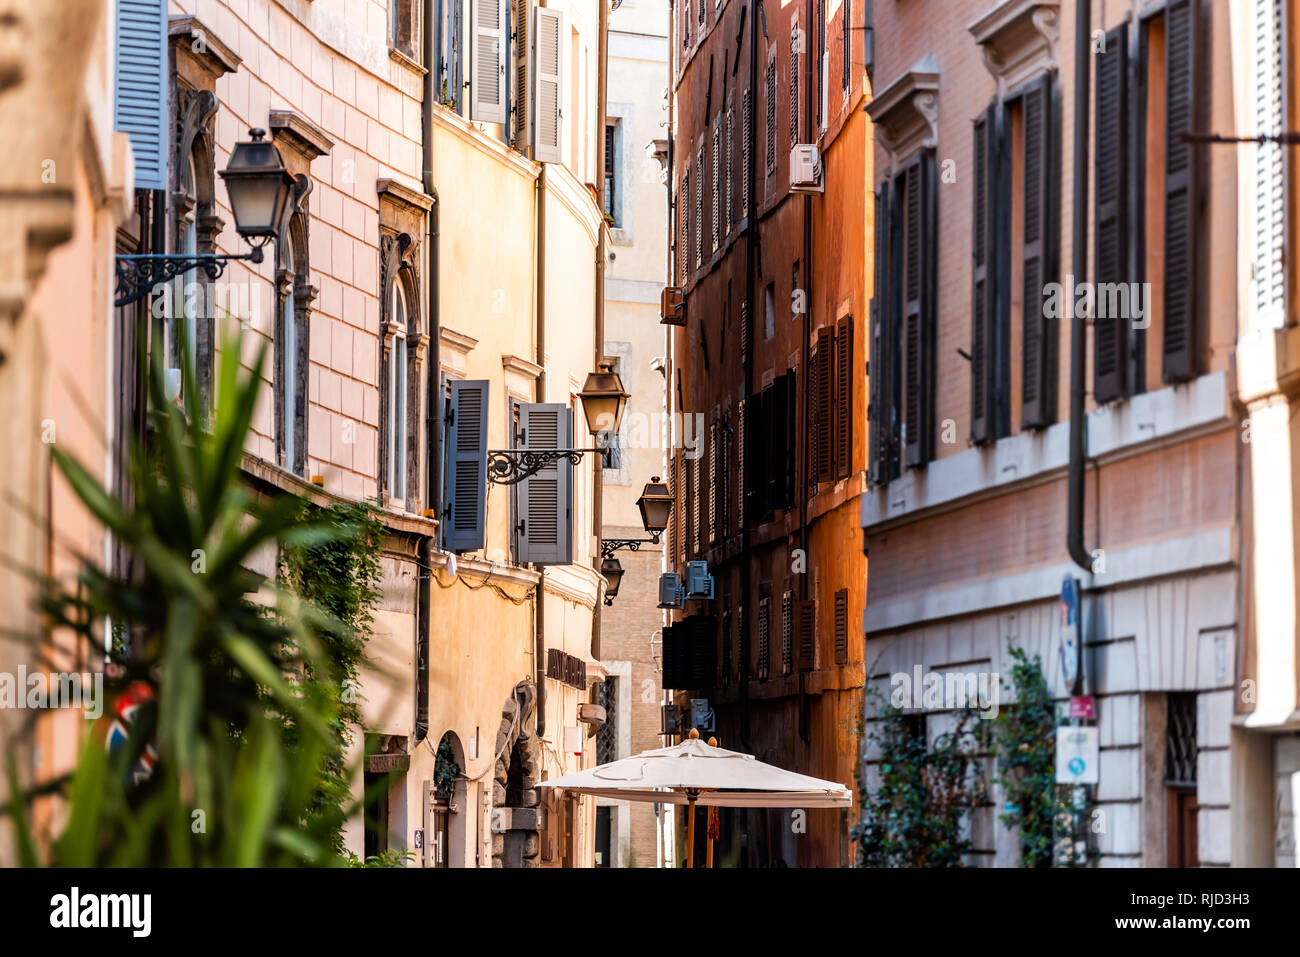 Rome, Italy - September 4, 2018: Italian outside traditional narrow empty alley with nobody on street in historic city summer plants lanterns Stock Photo